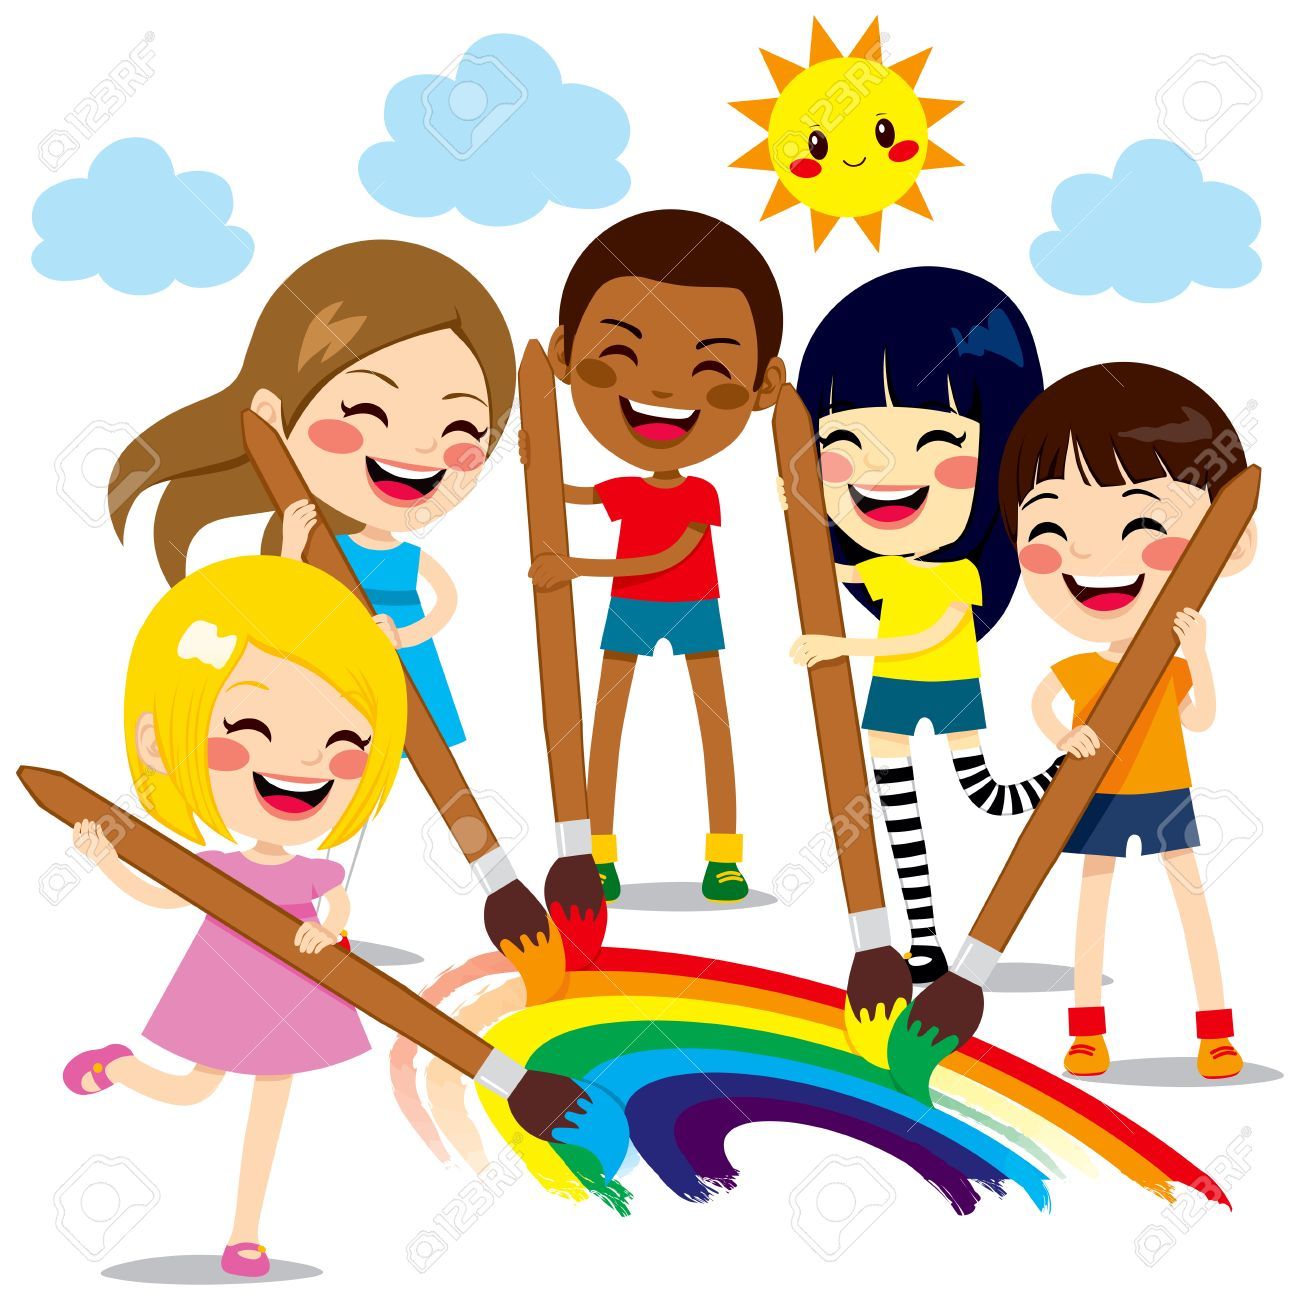 five cute little kids painting together a beautiful colorful rainbow with paint colors and brushes stock - Kids Pictures To Paint